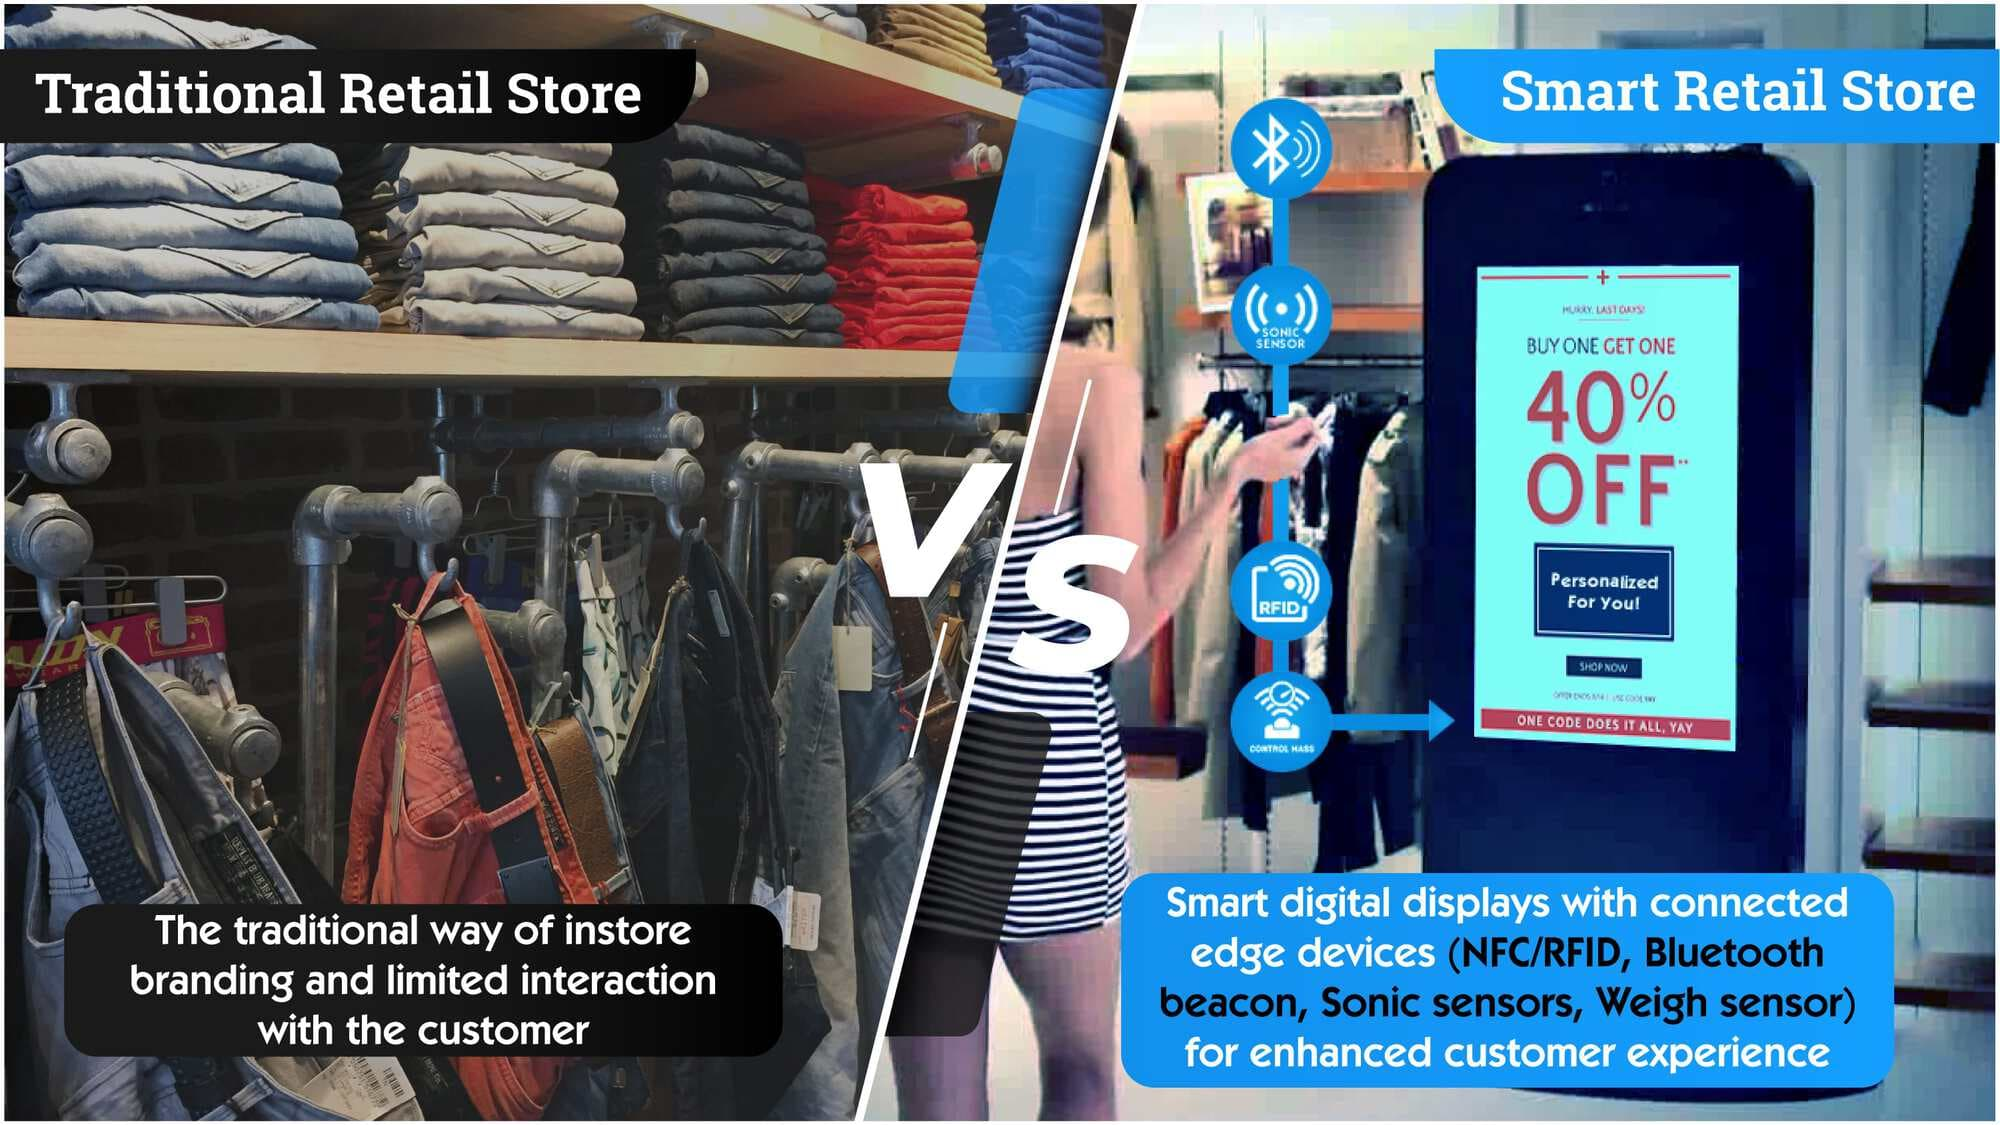 B2b2c Solutions -Smart Retail Dispaly Solution